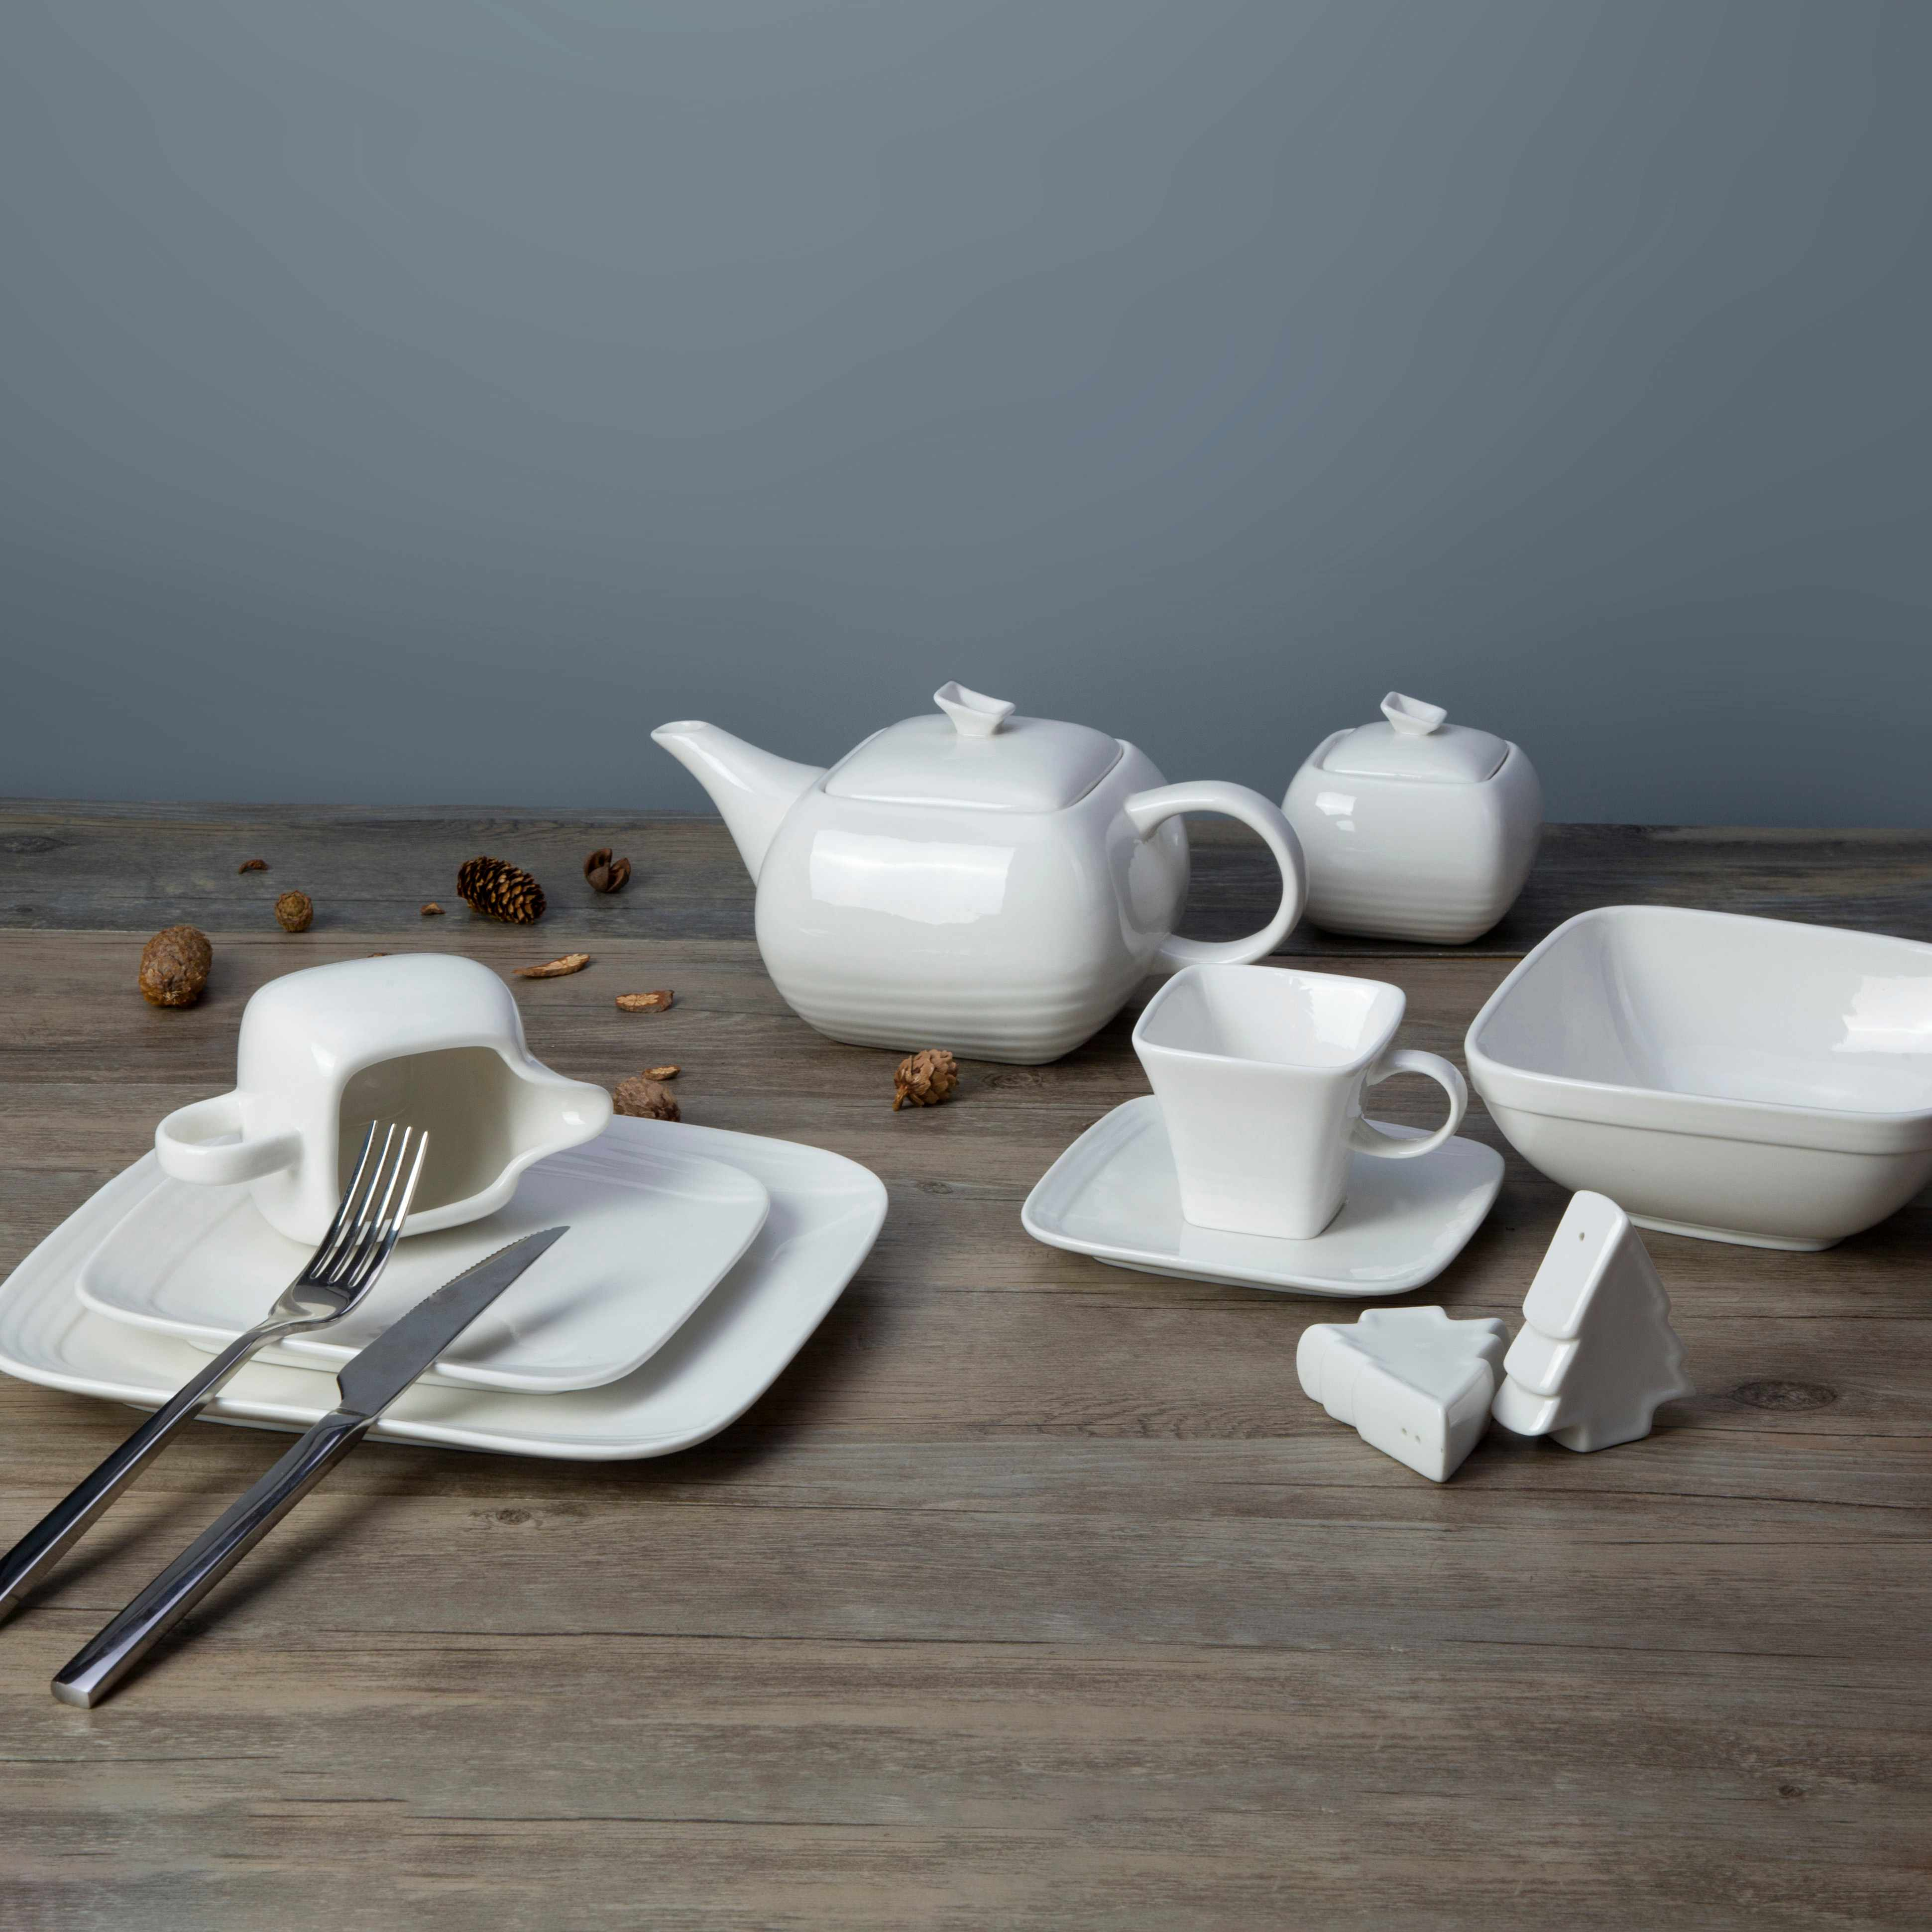 Two Eight White ceramic dinnerware set - XING HE SERIES White Porcelain Dinner Set image10